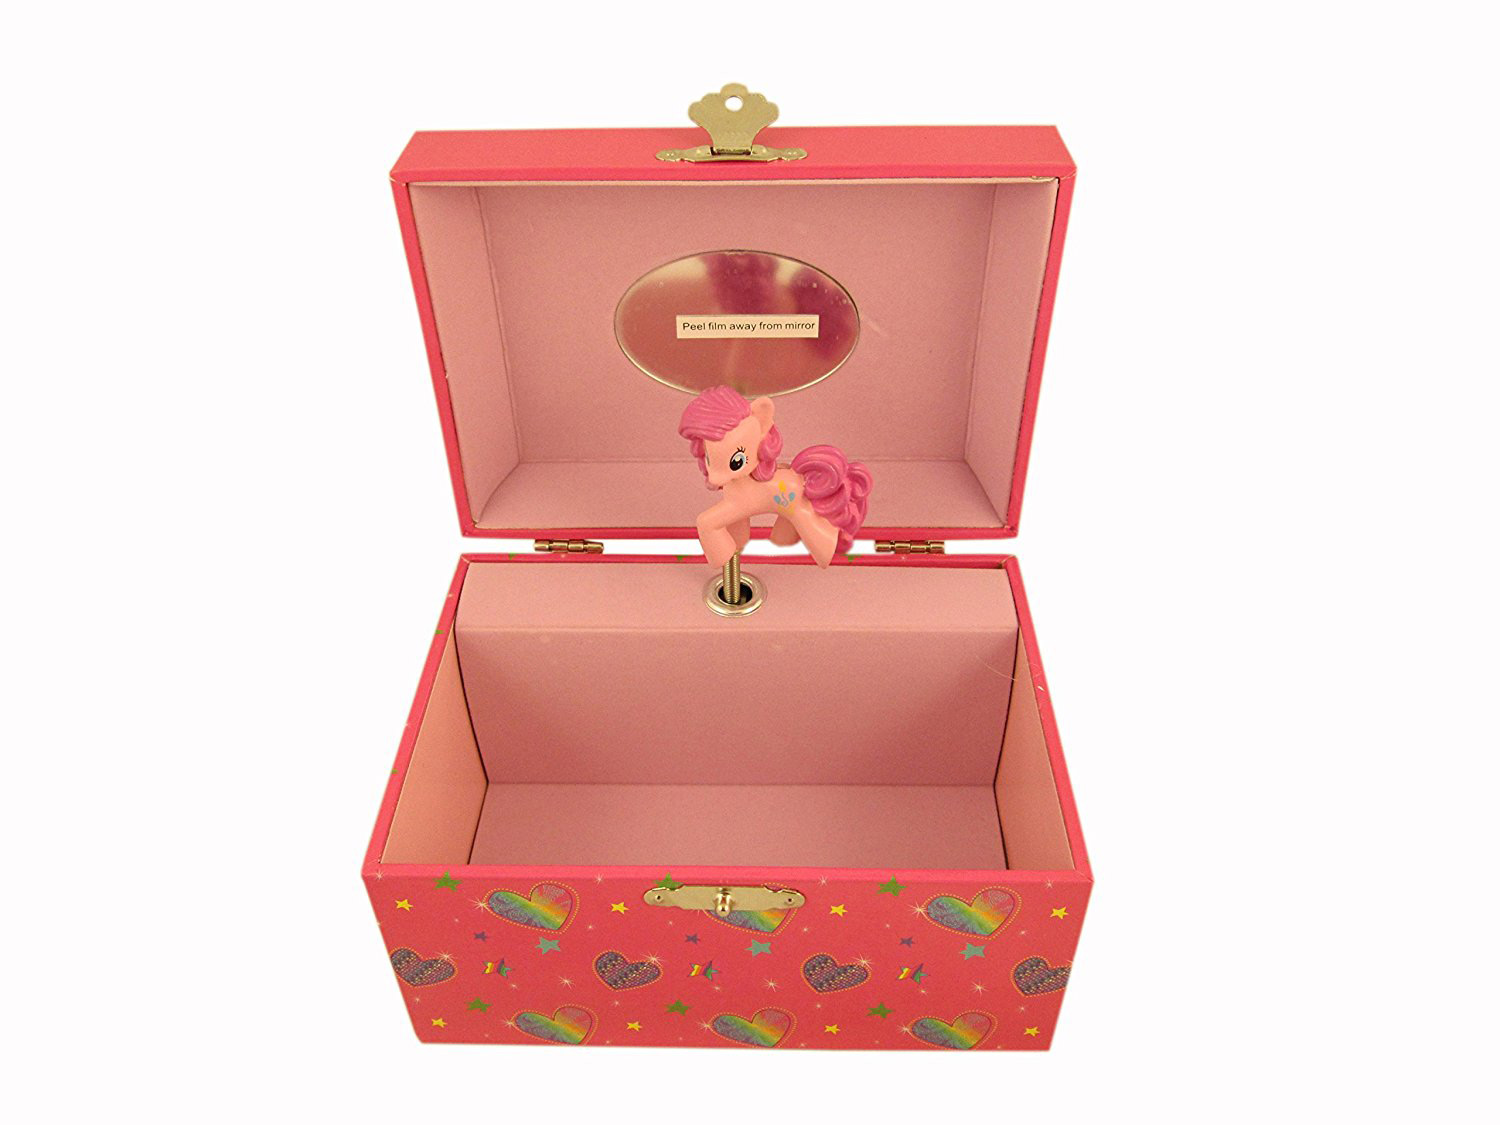 Cute Orange & Pink Mirrored Musical Jewelry Box